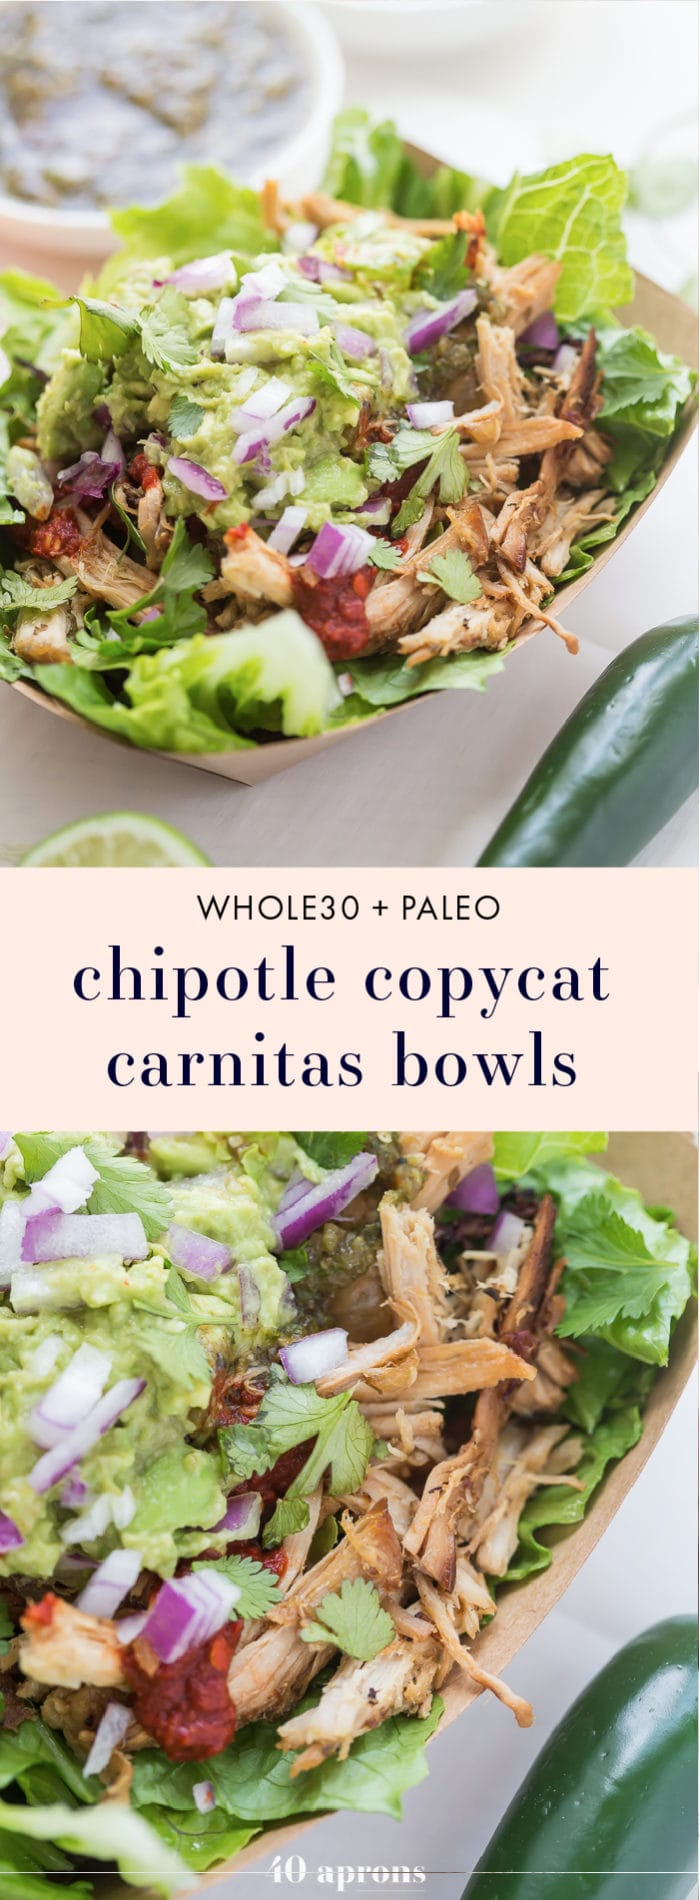 This Chipotle copycat Whole30 carnitas bowl is a take on the Whole30 Chipotle favorite and is a fantastic Whole30 dinner, especially for warmer weather! I just can't think of a better way to eat Whole30 Mexican food. Sorry, Chipotle!